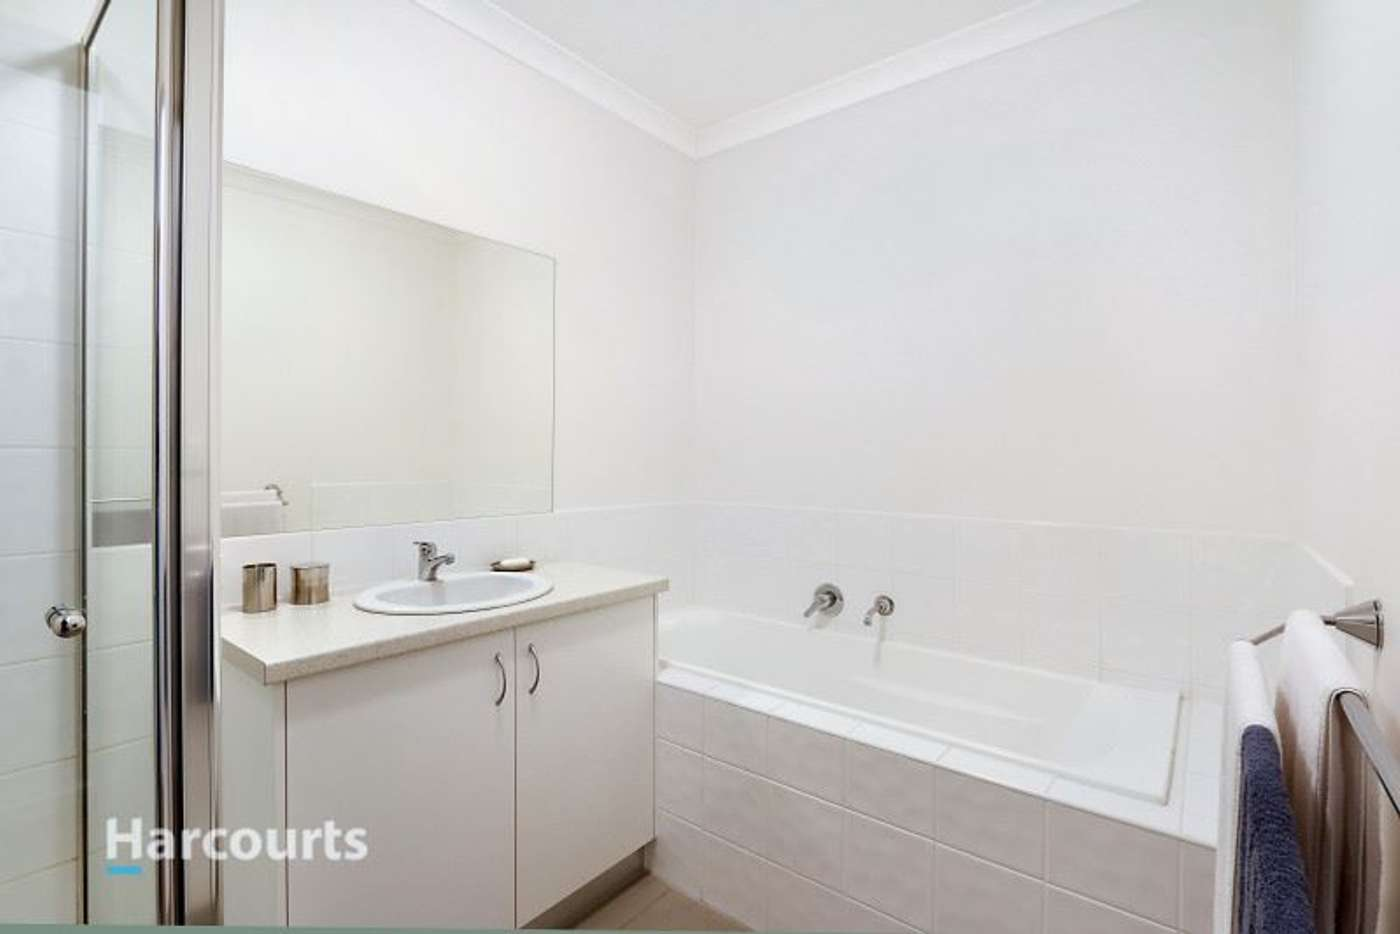 Fifth view of Homely house listing, 2/11 Olivia Way, Hastings VIC 3915